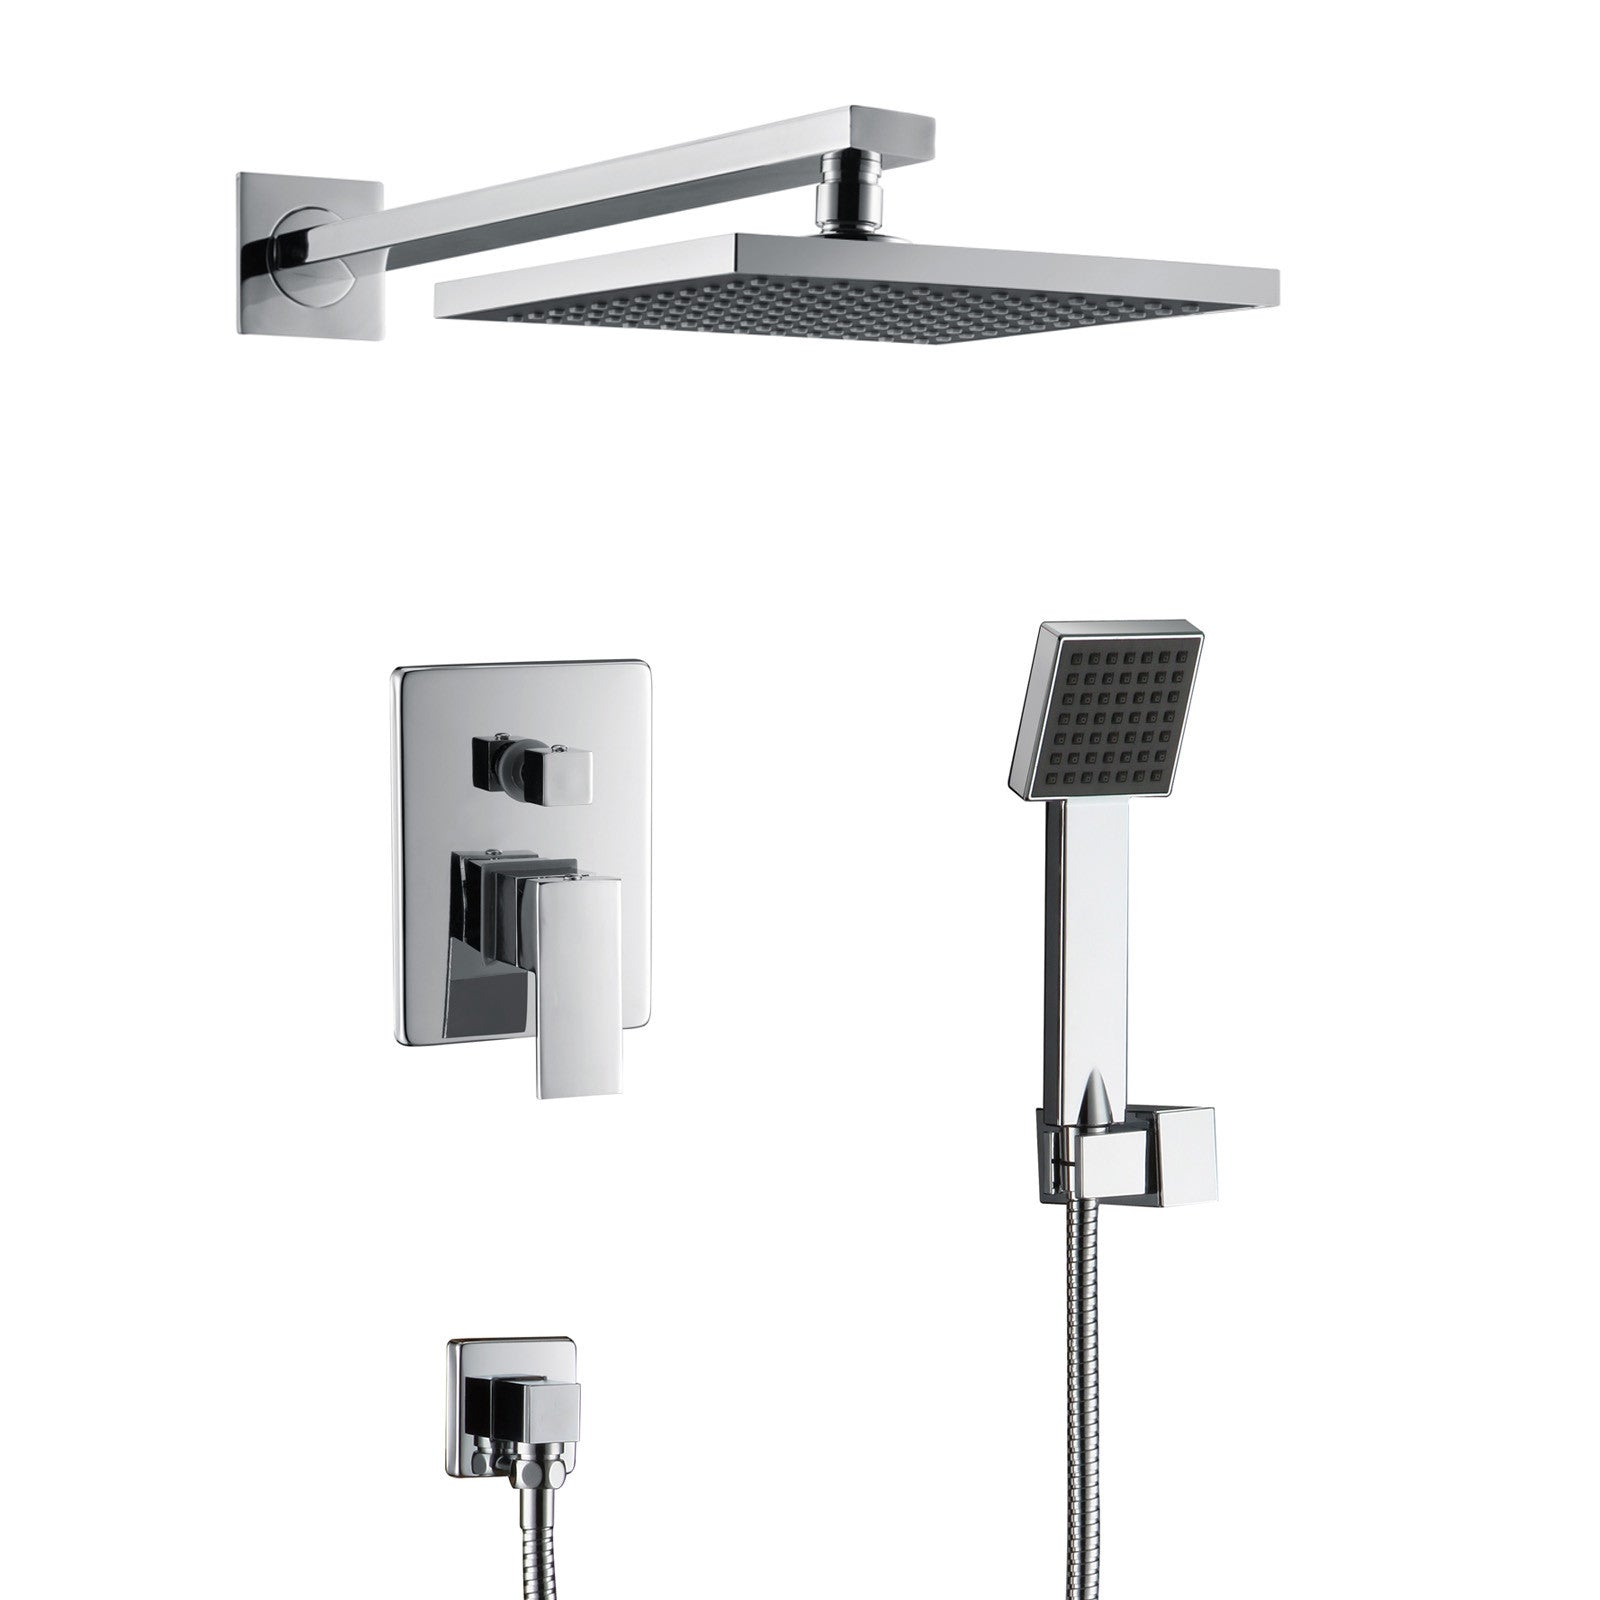 qrs full the polished stands spray rain overhead kohler showerhead bathroom honed emprise mirrors tile night size travertine head cool tv tiles in shower watertile chrome ceiling of group